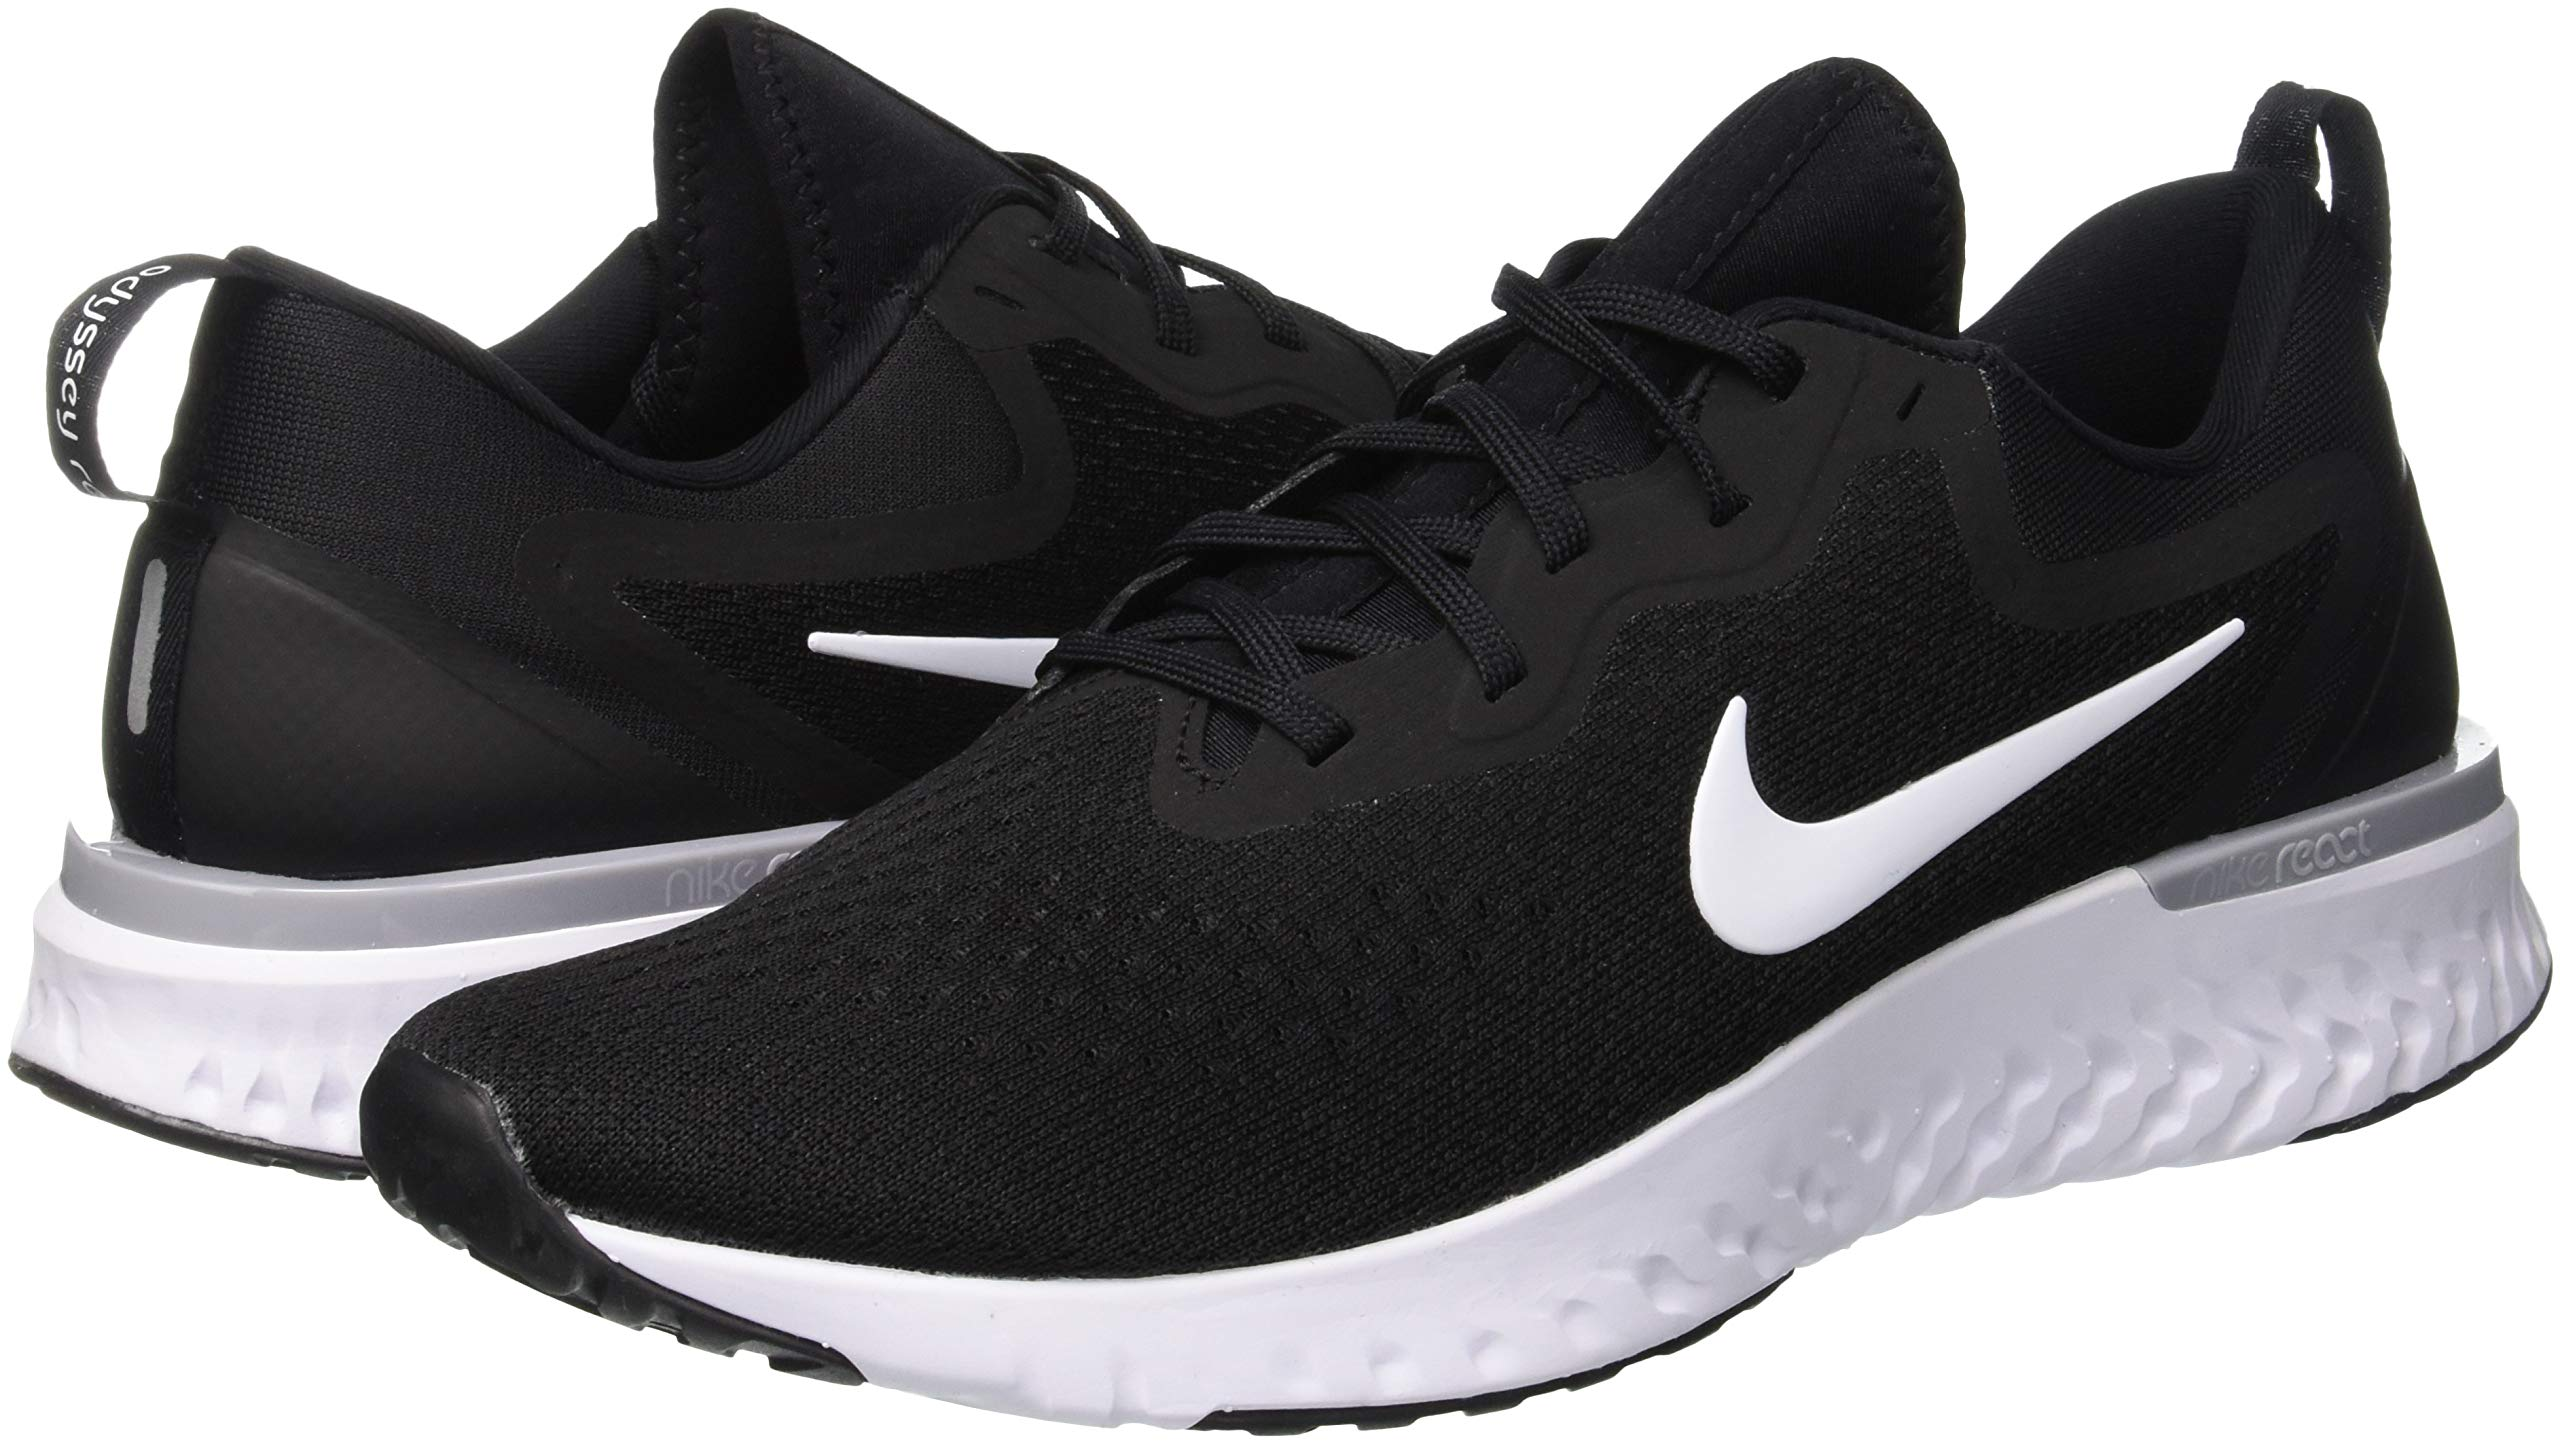 Nike Odyssey React Mens Running Trainers AO9819 Sneakers Shoes (UK 6 US 7 EU 40, Black White Wolf Grey 001) by Nike (Image #5)